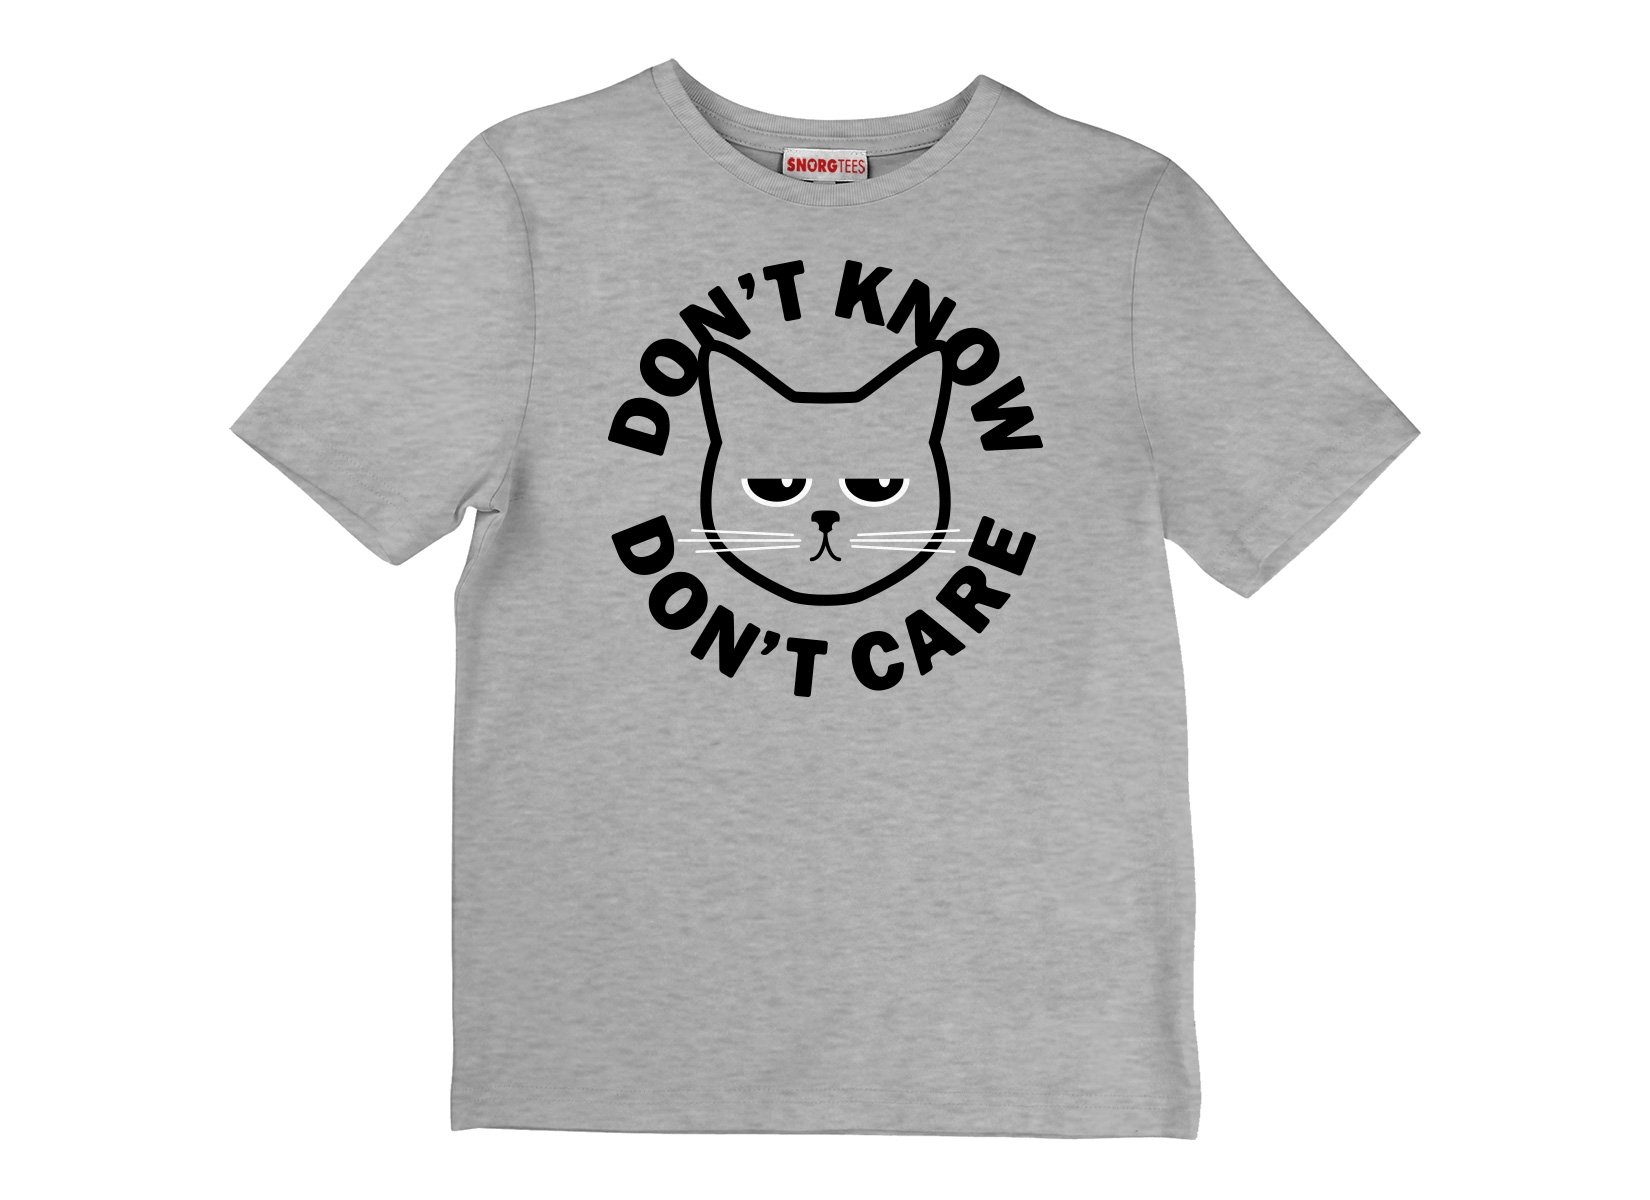 Don't Know Don't Care on Kids T-Shirt